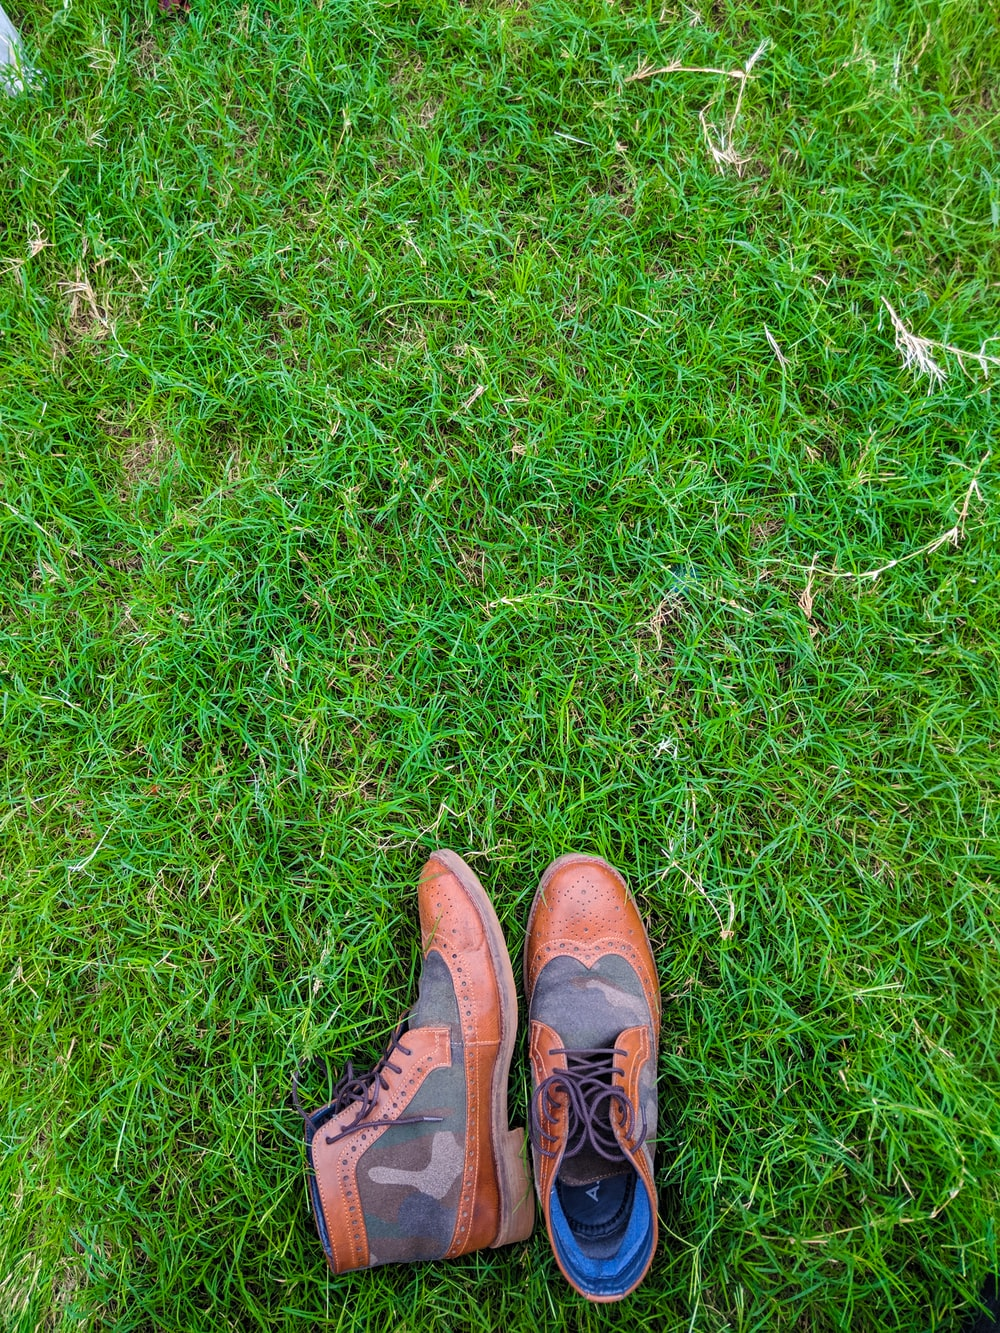 pair of brown-and-gray camouflage leather wing-tip boots on grass